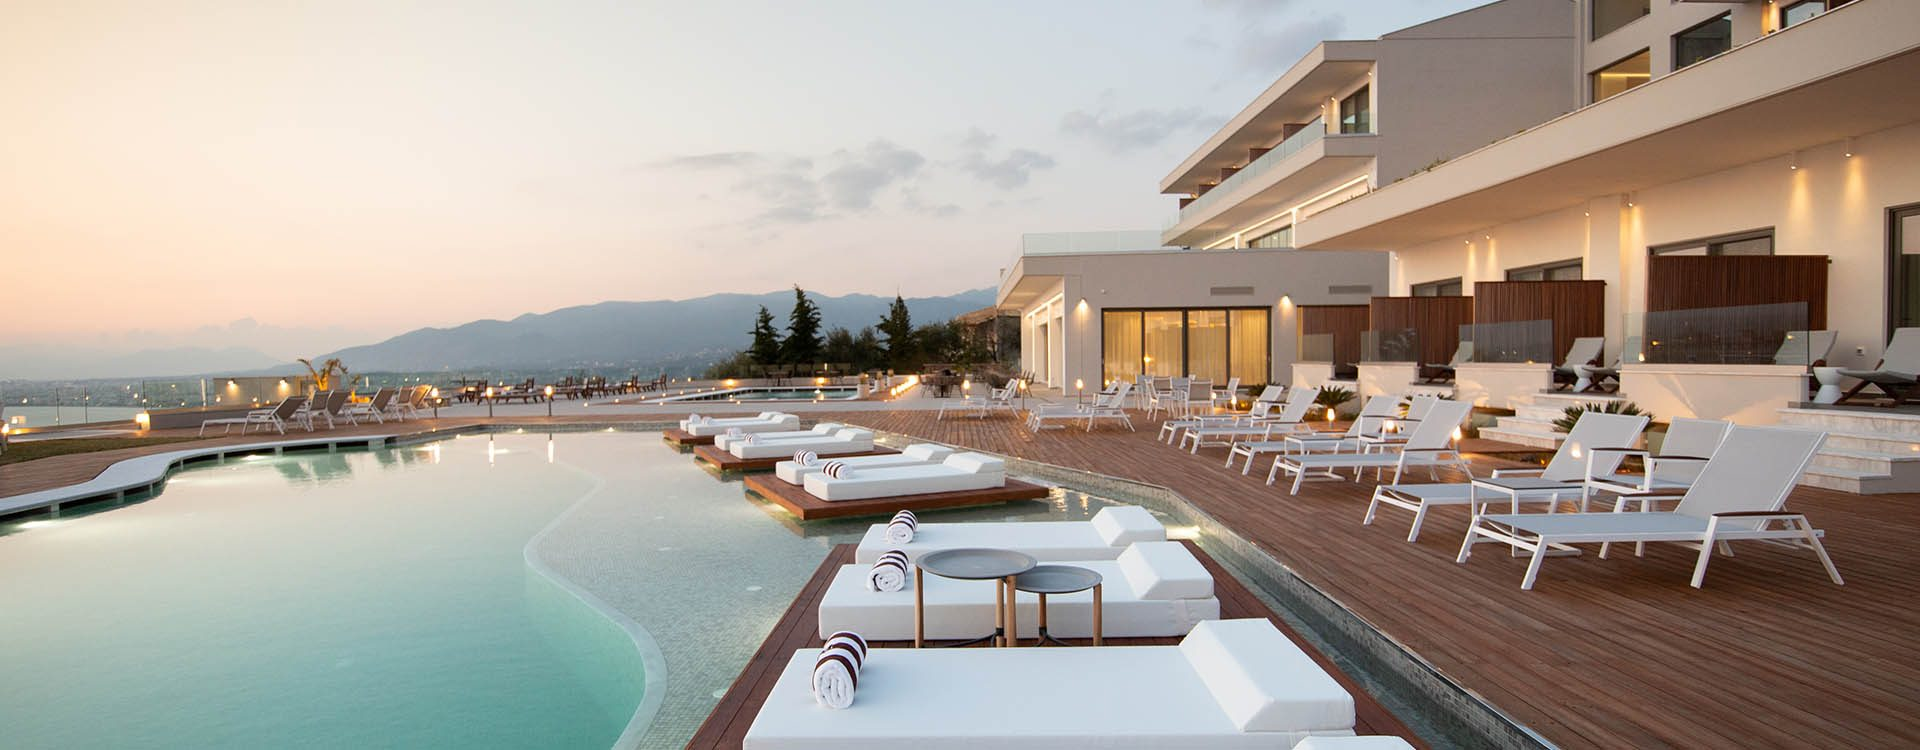 kalamata hotels - Messinian Icon Hotel